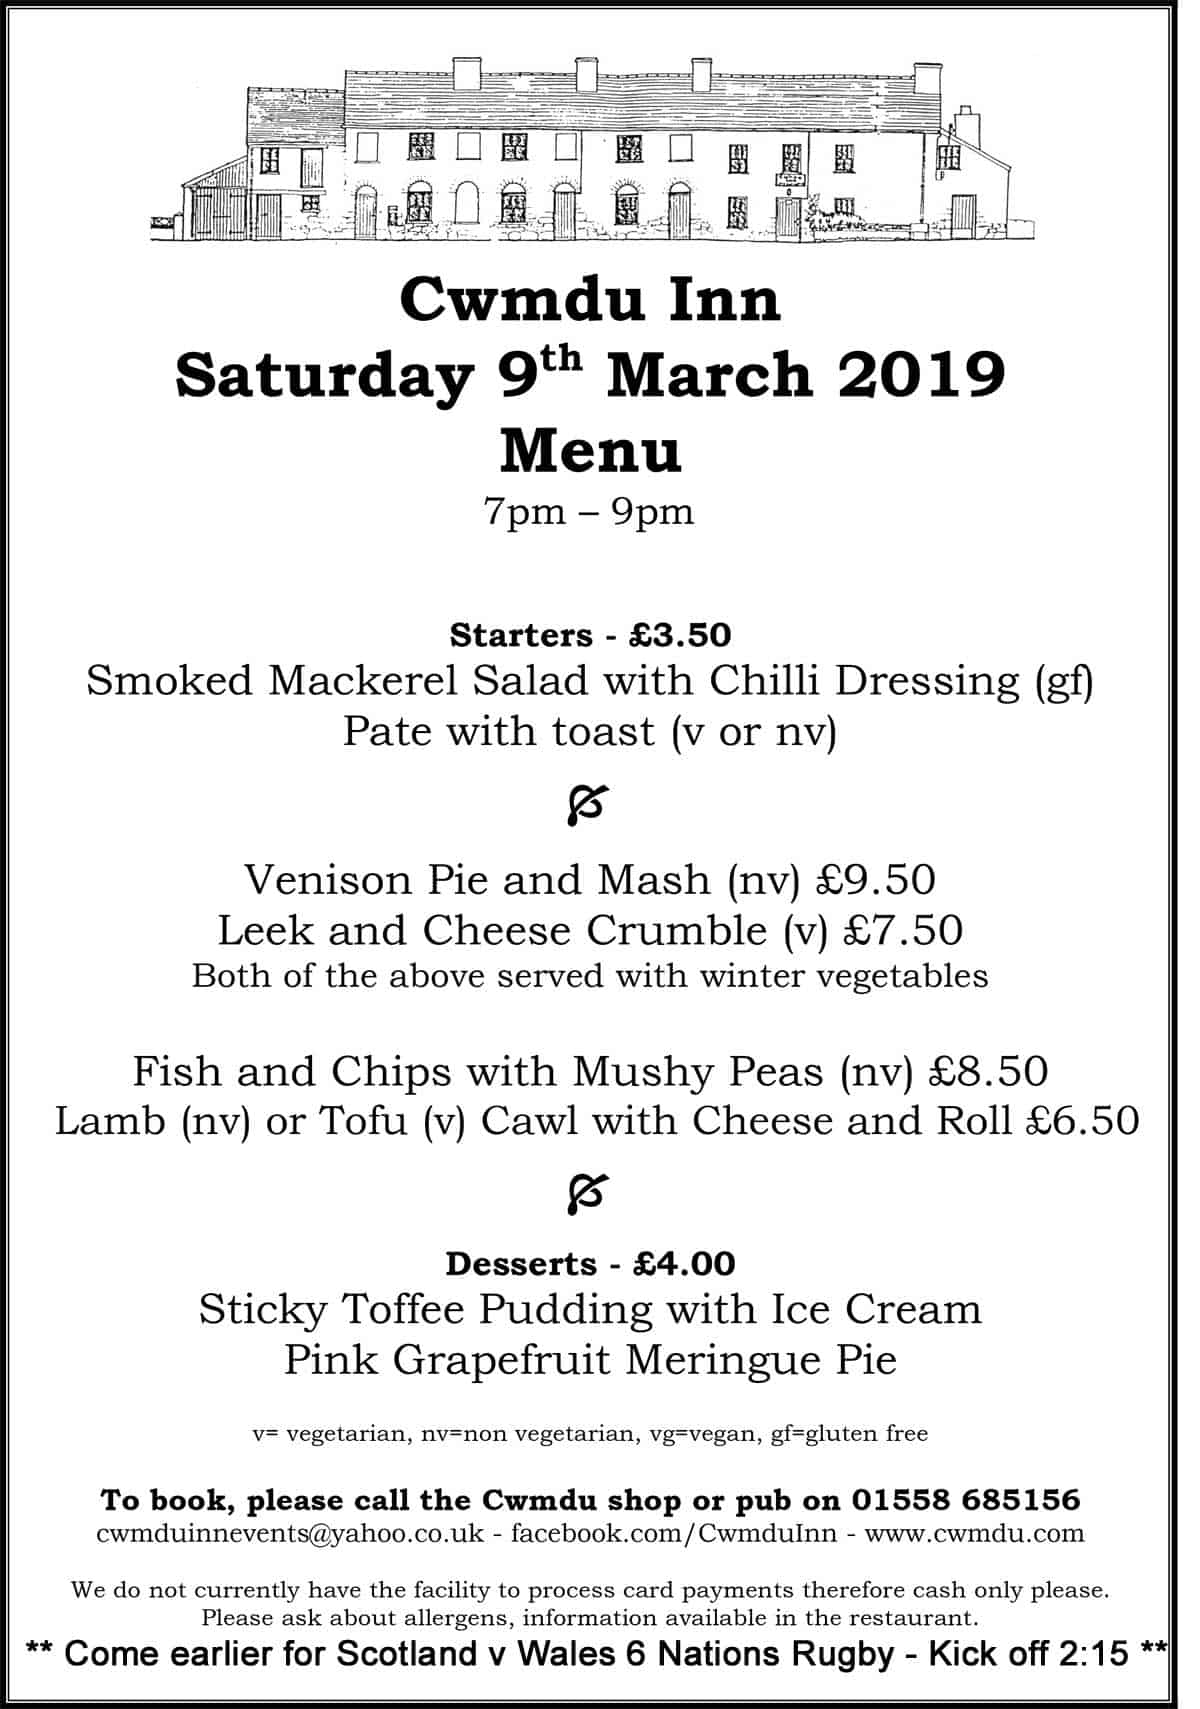 Cwmdu-Inn-Menu--9-March-2019 - Come earlier for 6 nations Rugby